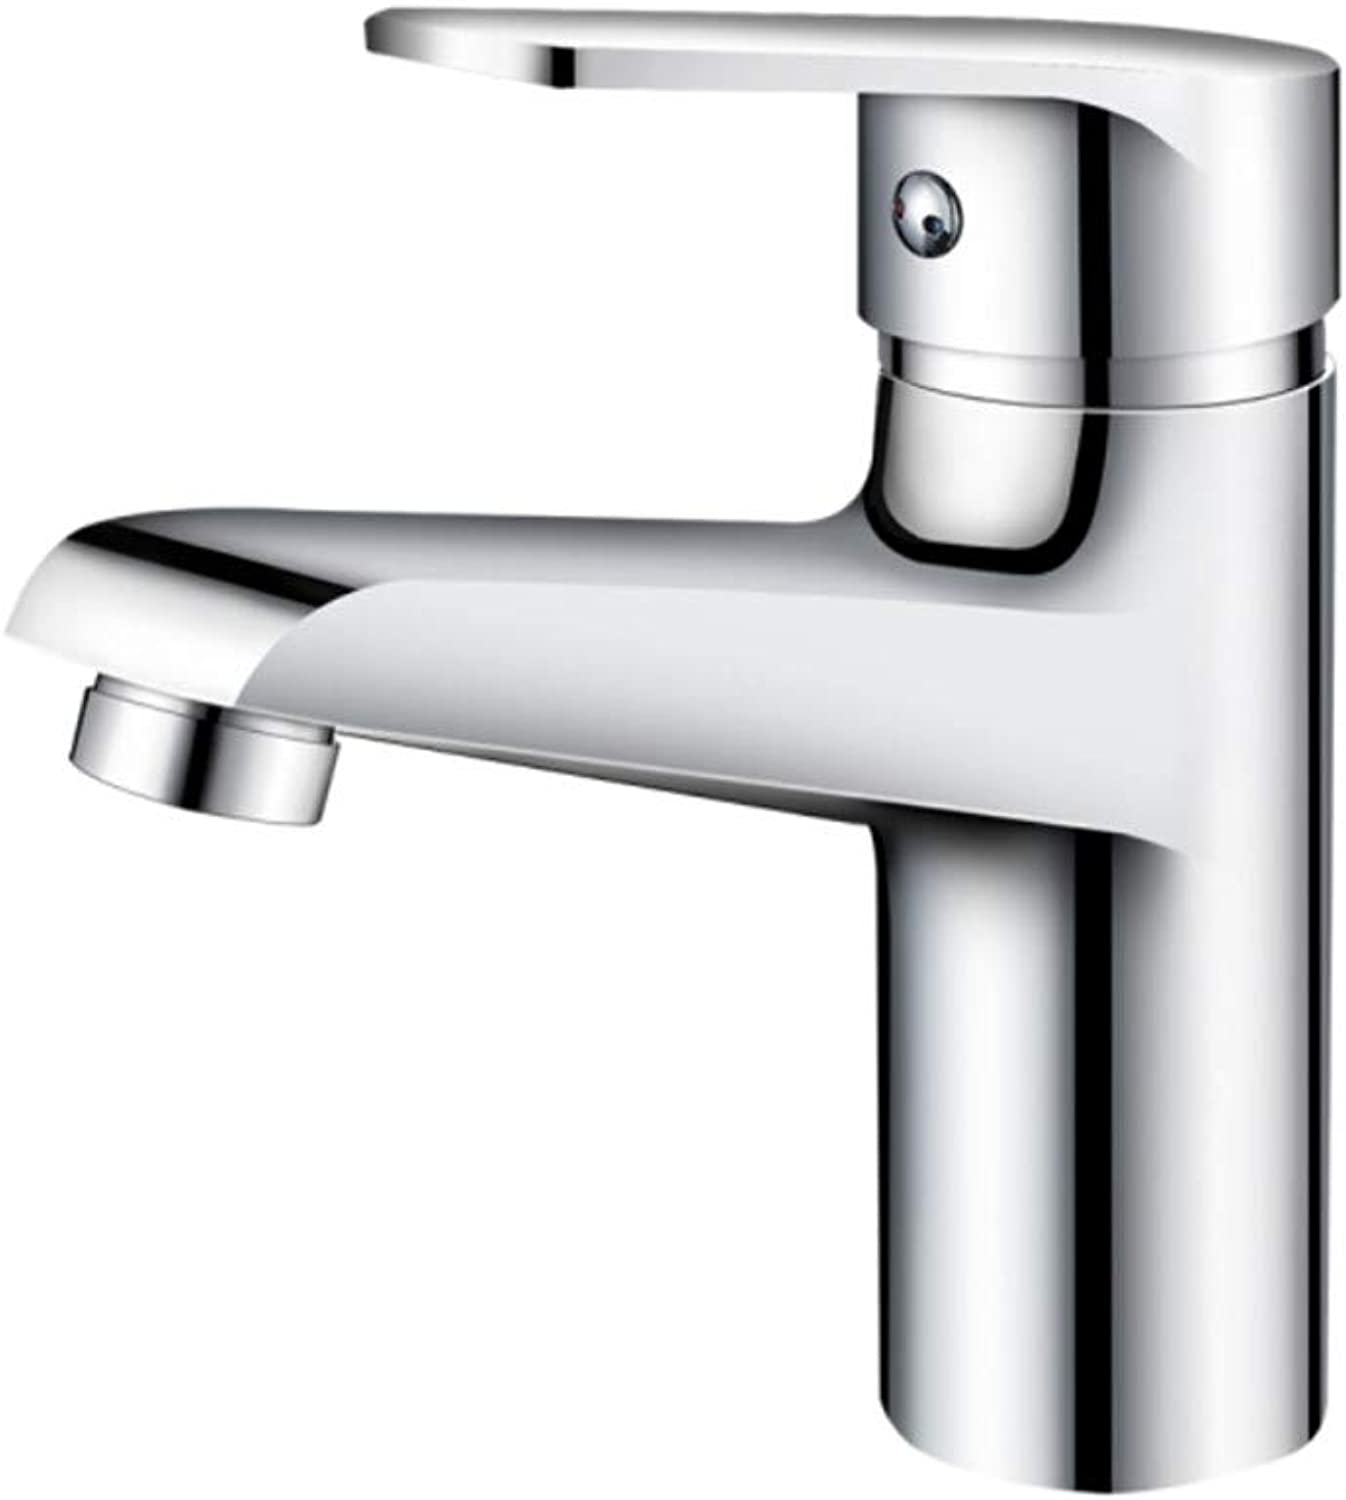 Kitchen Sink Taps Bathroom Taps Copper Face Basin Faucet Bathroom Sheet Single Hole Washbasin Cold and Hot Water Faucet